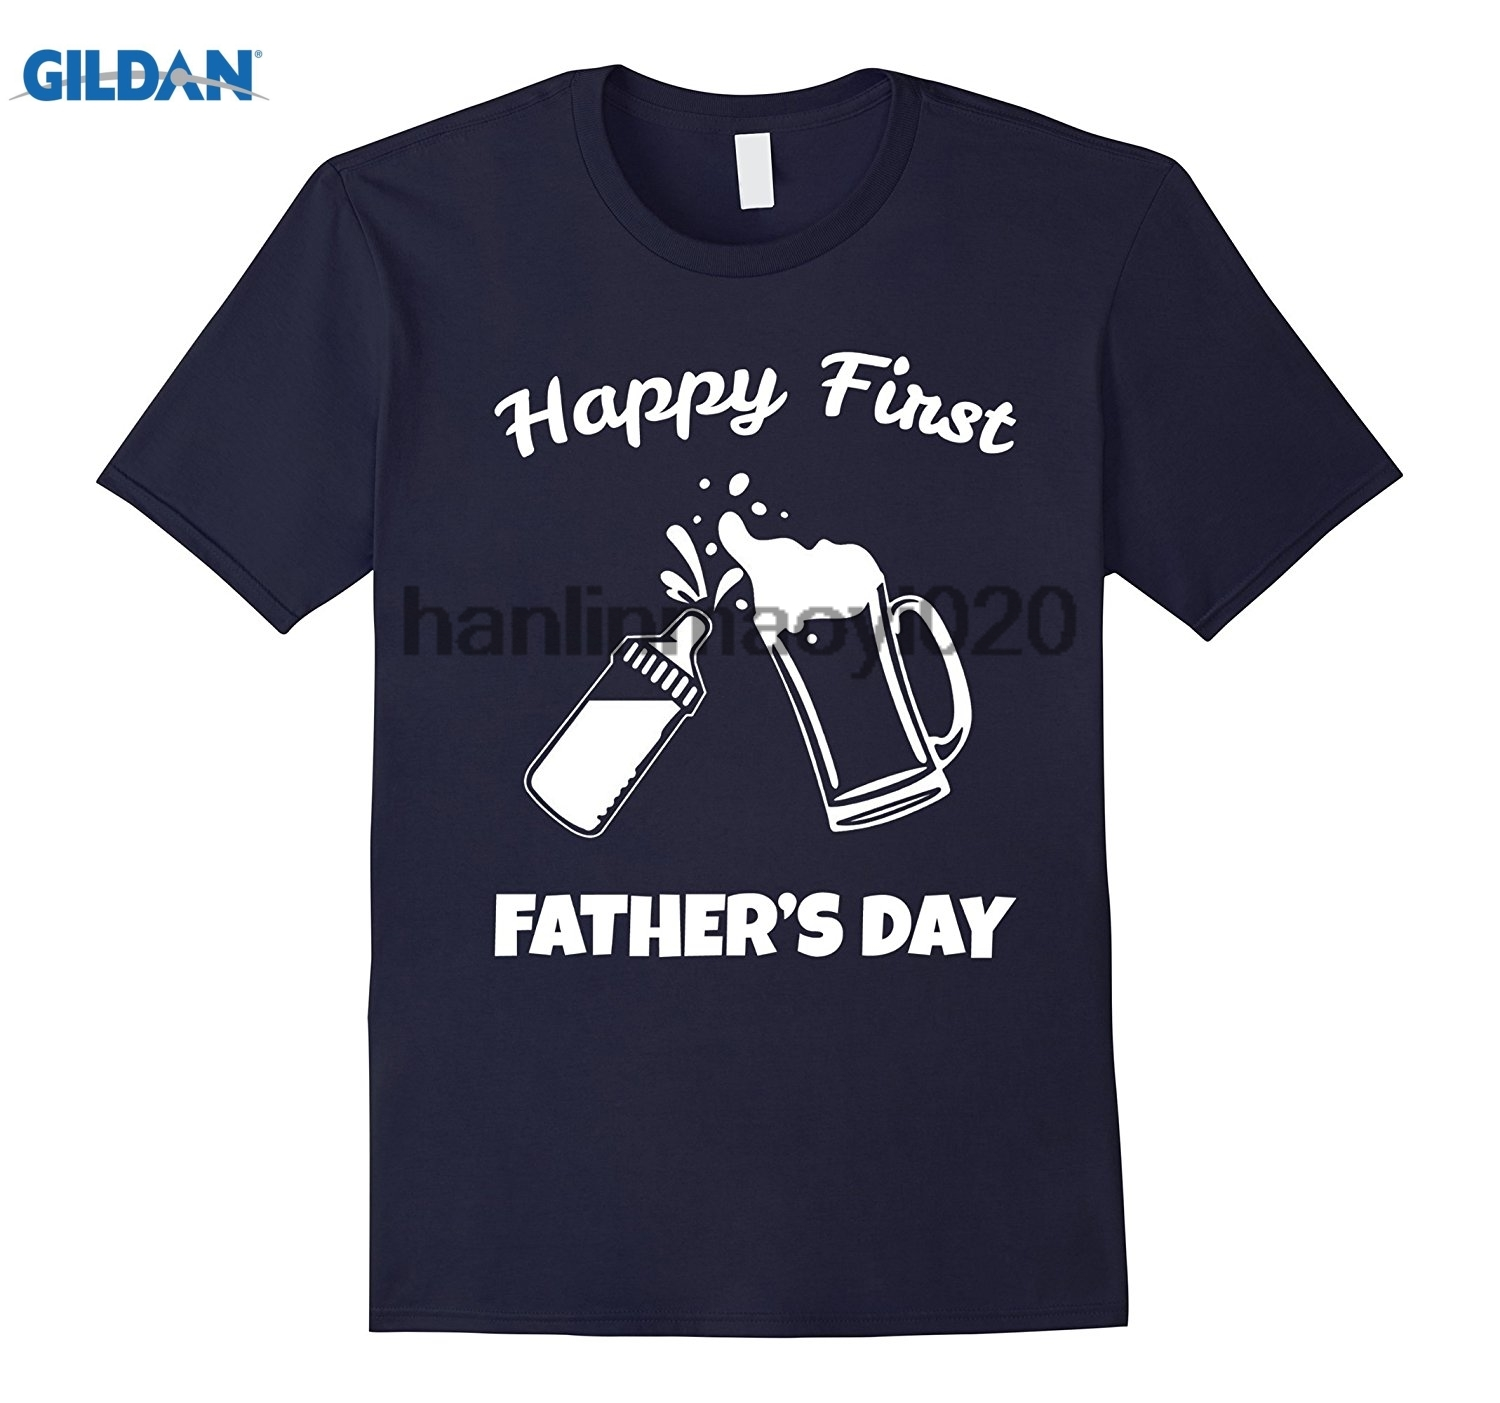 GILDAN Mens Fathers Day Gifts Happy First Fathers Day T-Shirt